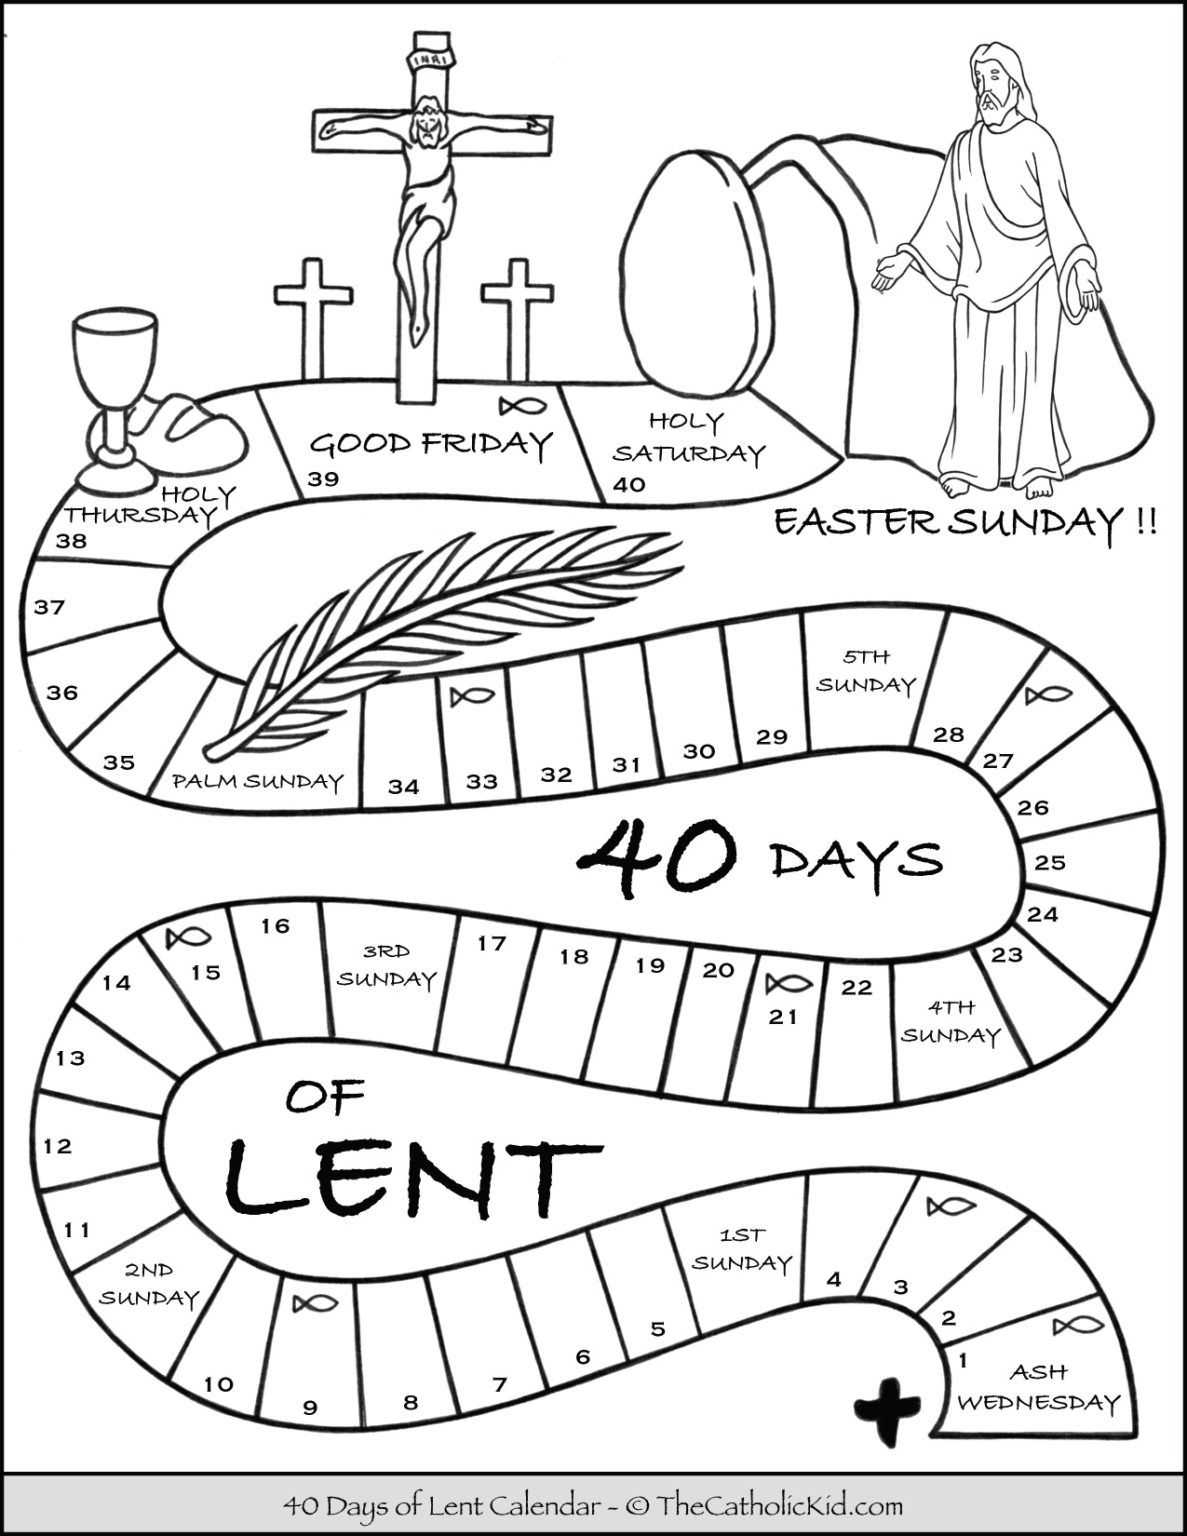 small resolution of palm sunday Archives - The Catholic Kid - Catholic Coloring Pages and Games  for Children   Catholic coloring